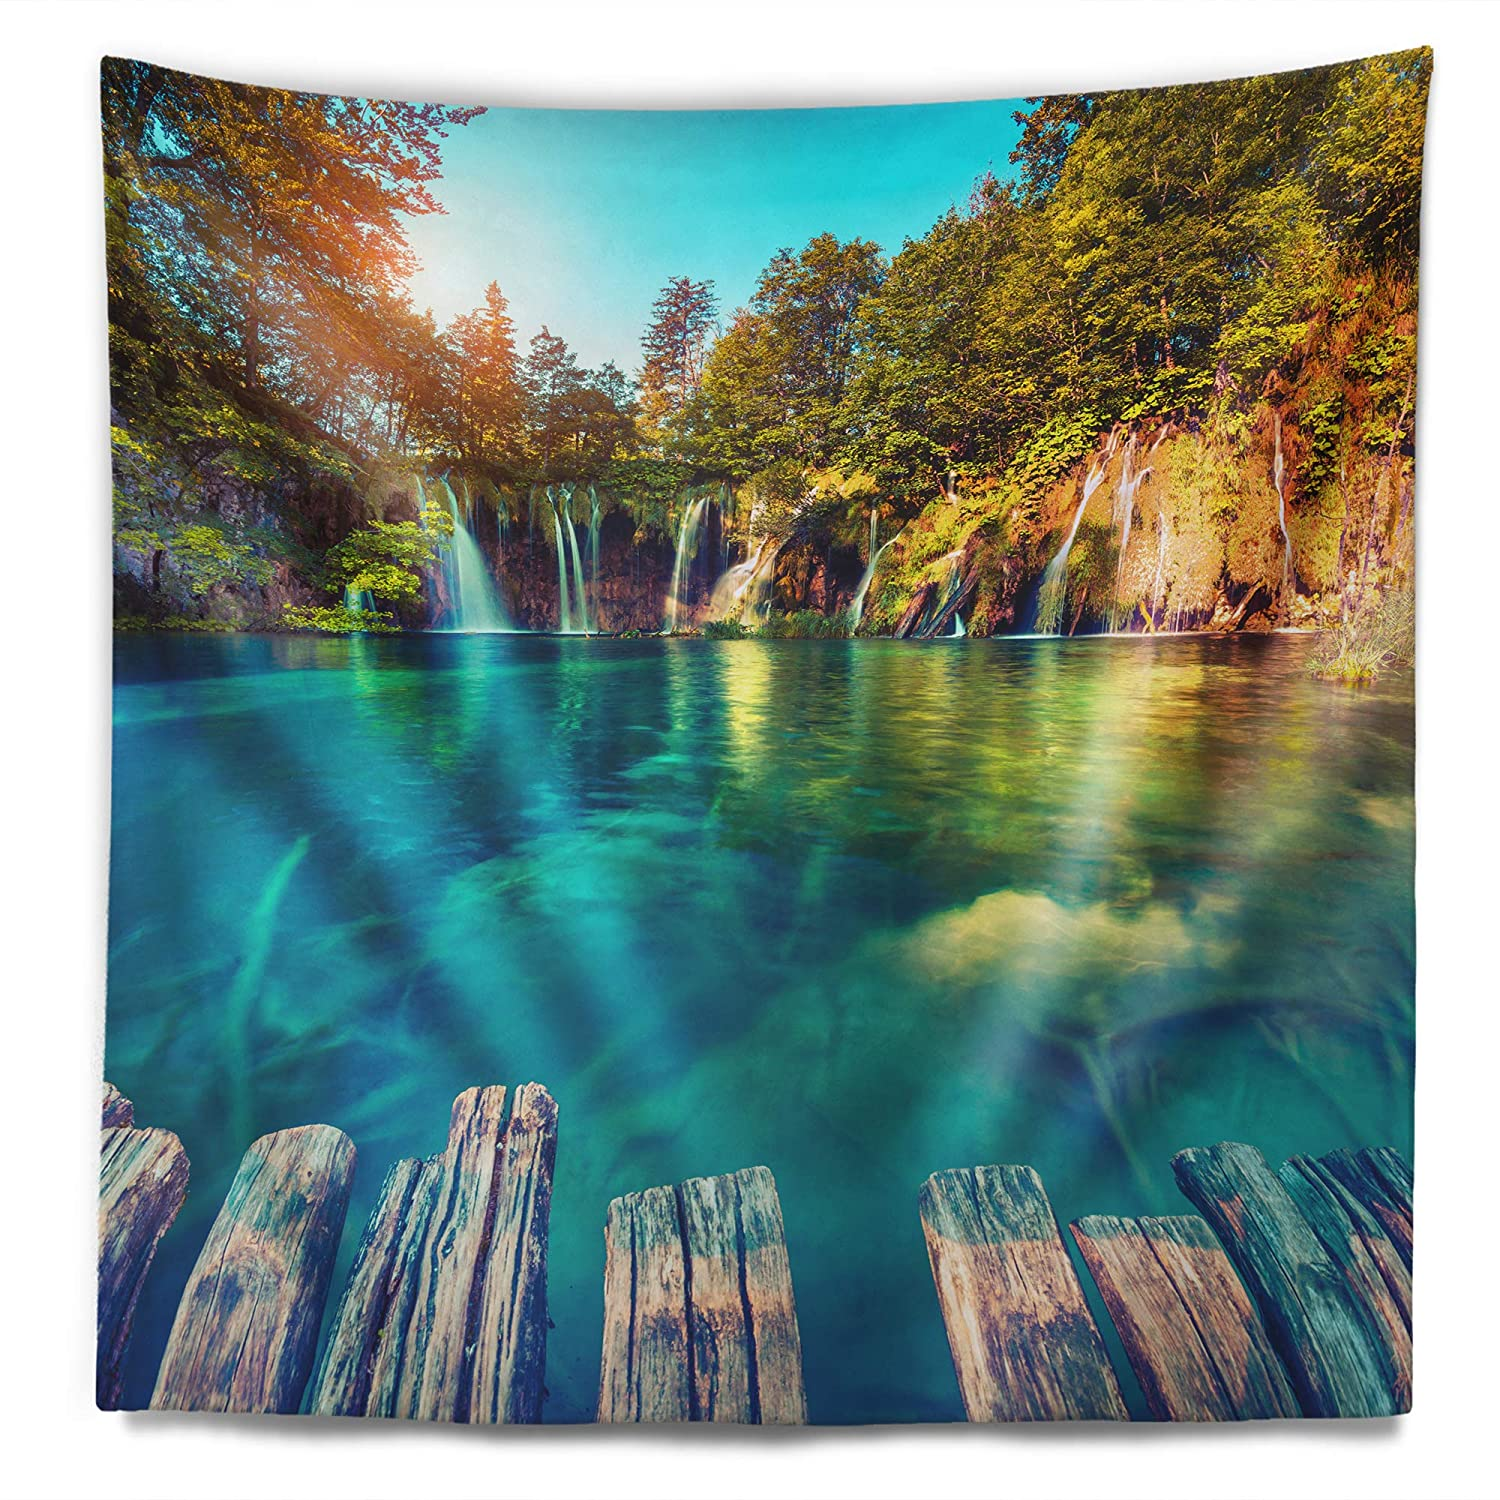 Designart Tap9090 50 60 Blue Waters In Plitvice Lakes Landscape Photo Blanket Décor Art For Home And Office Wall Tapestry Large 50 In In X 60 In Home Kitchen Home Décor